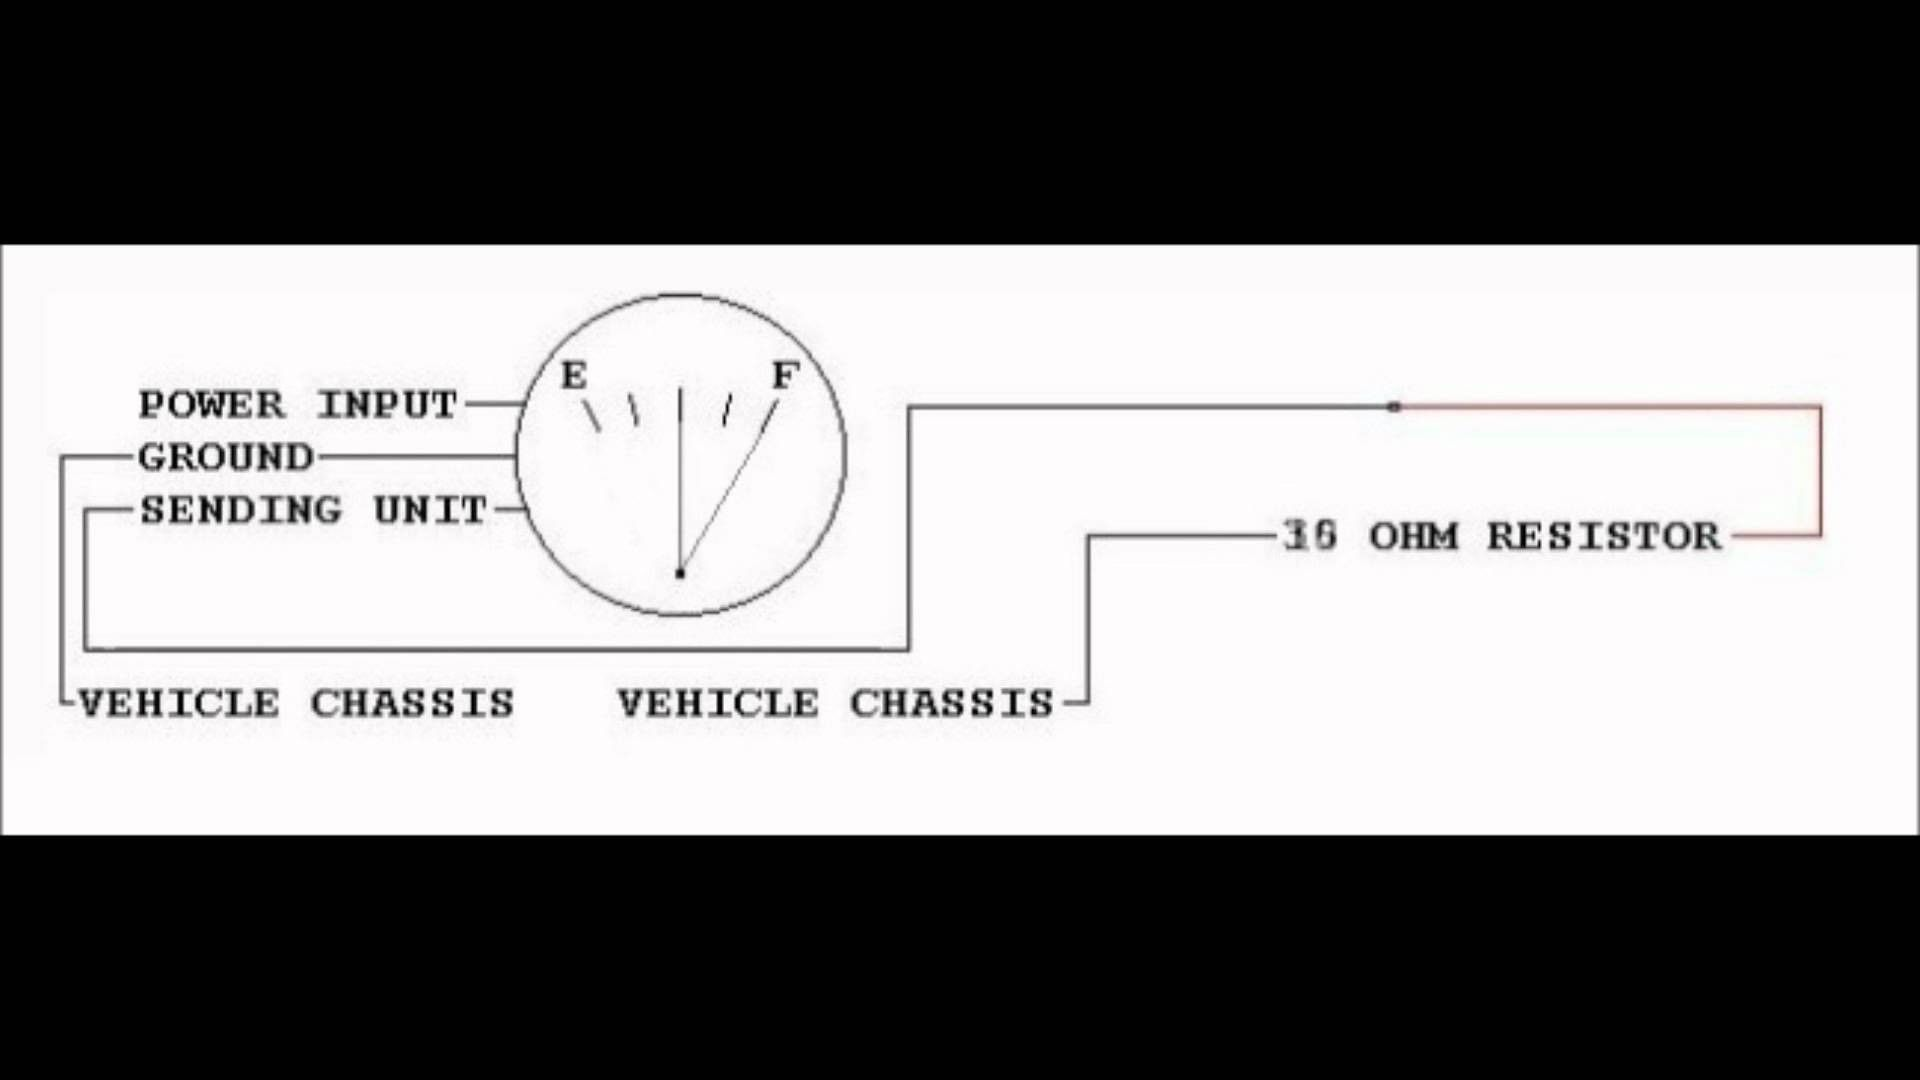 Gm Fuel Sending Unit Wiring Diagram 2018 1997 Chevy Blazer Fuel